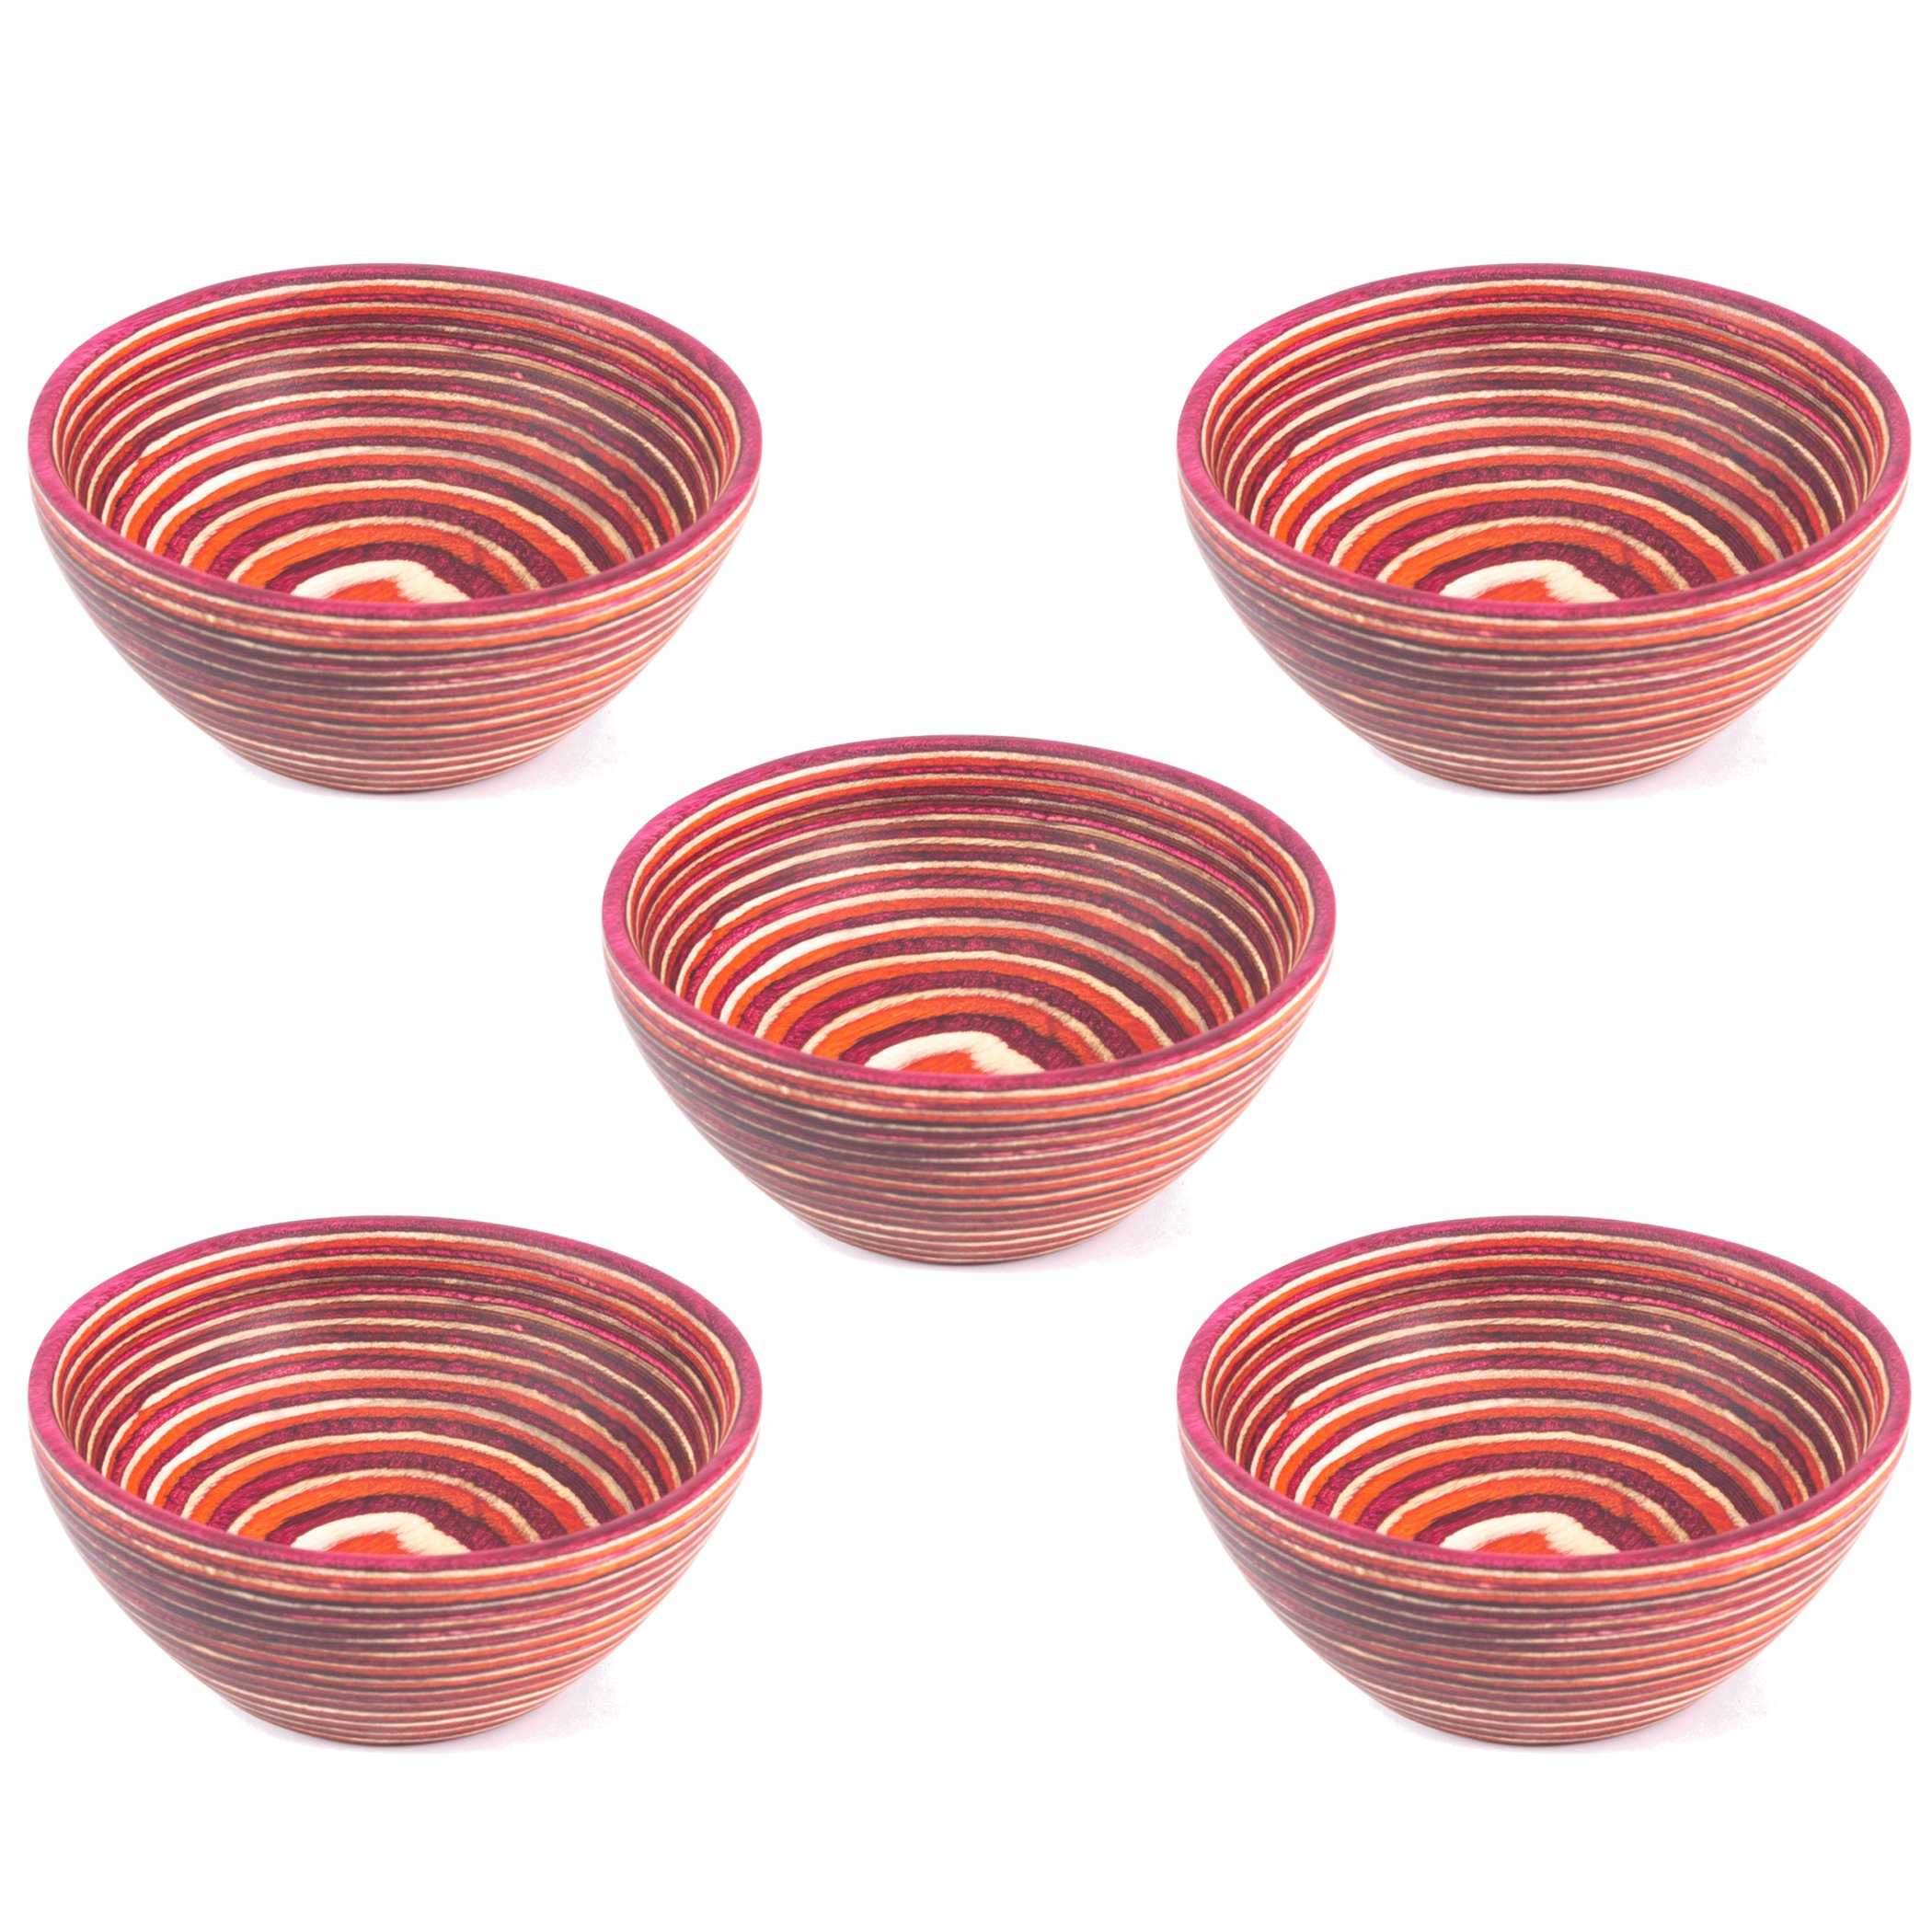 Exotic Pakka Wood Small Snack Bowls Set of 5 Stacking Round Bowls for Condiments and Ingredients - Made with Earth Friendly and Colorful Pakkawood Material by Crate Collective (Red)